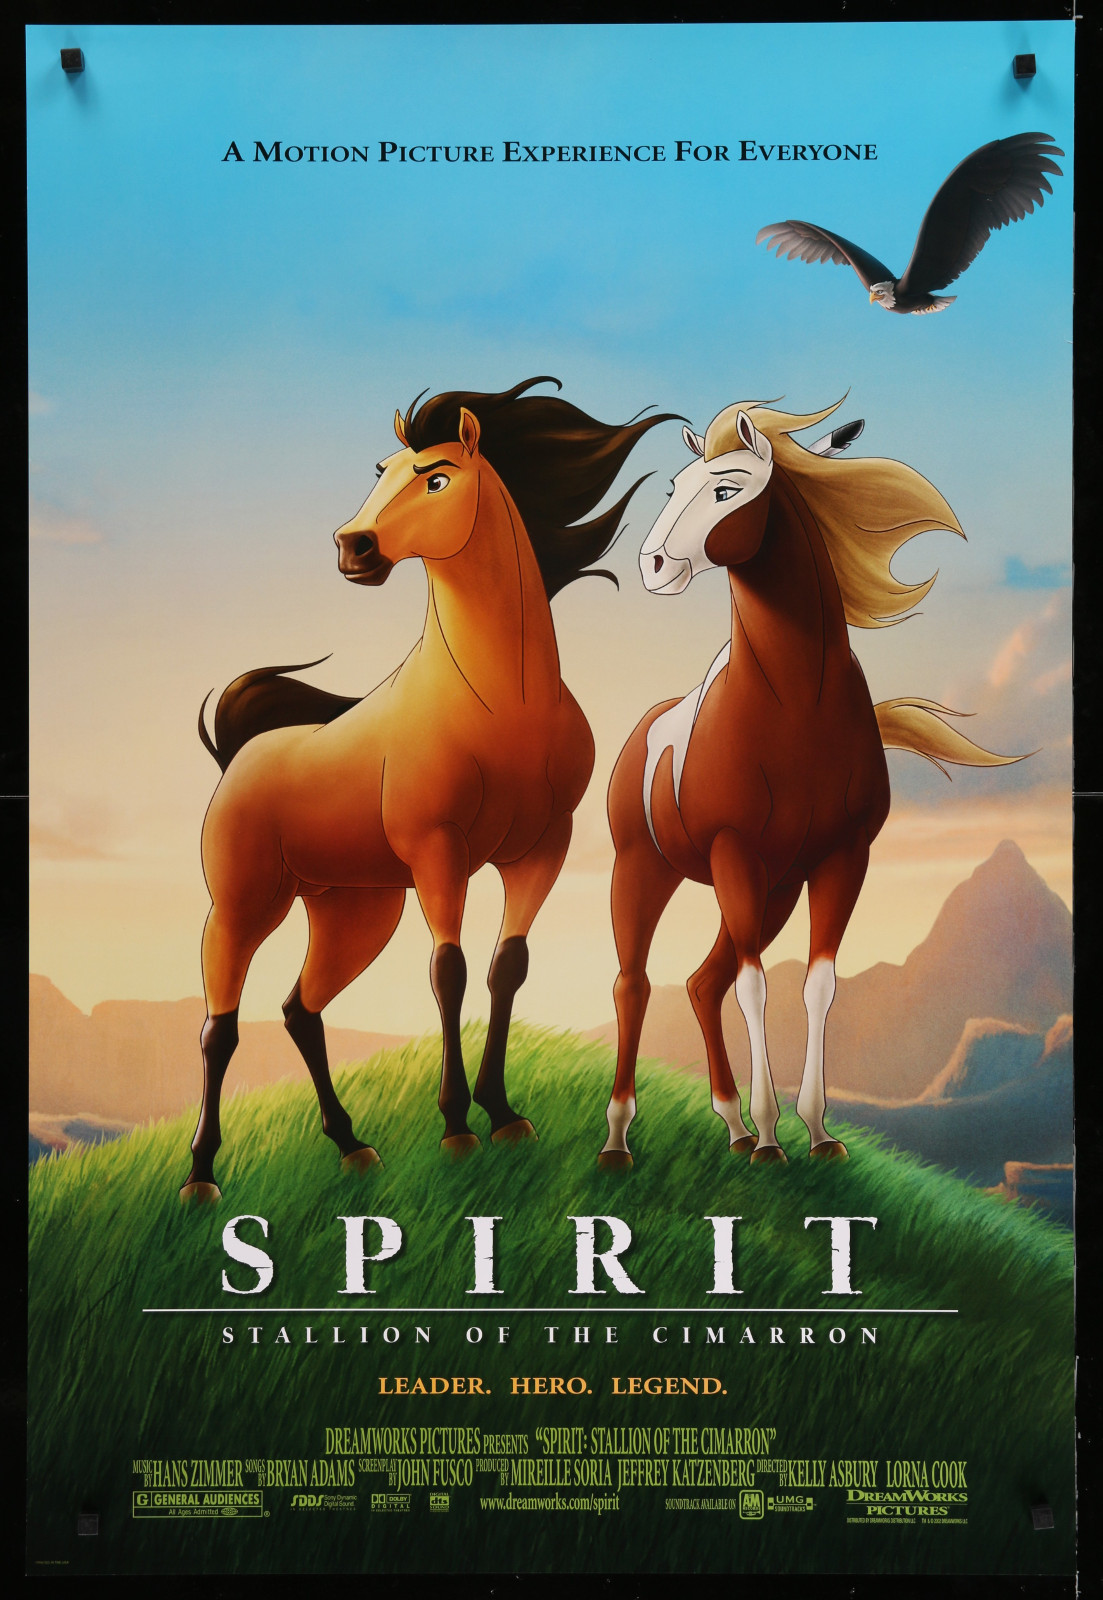 Spirit 2A366 A Part Of A Lot 29 Unfolded Double-Sided 27X40 One-Sheets '90S-00S Great Movie Images!